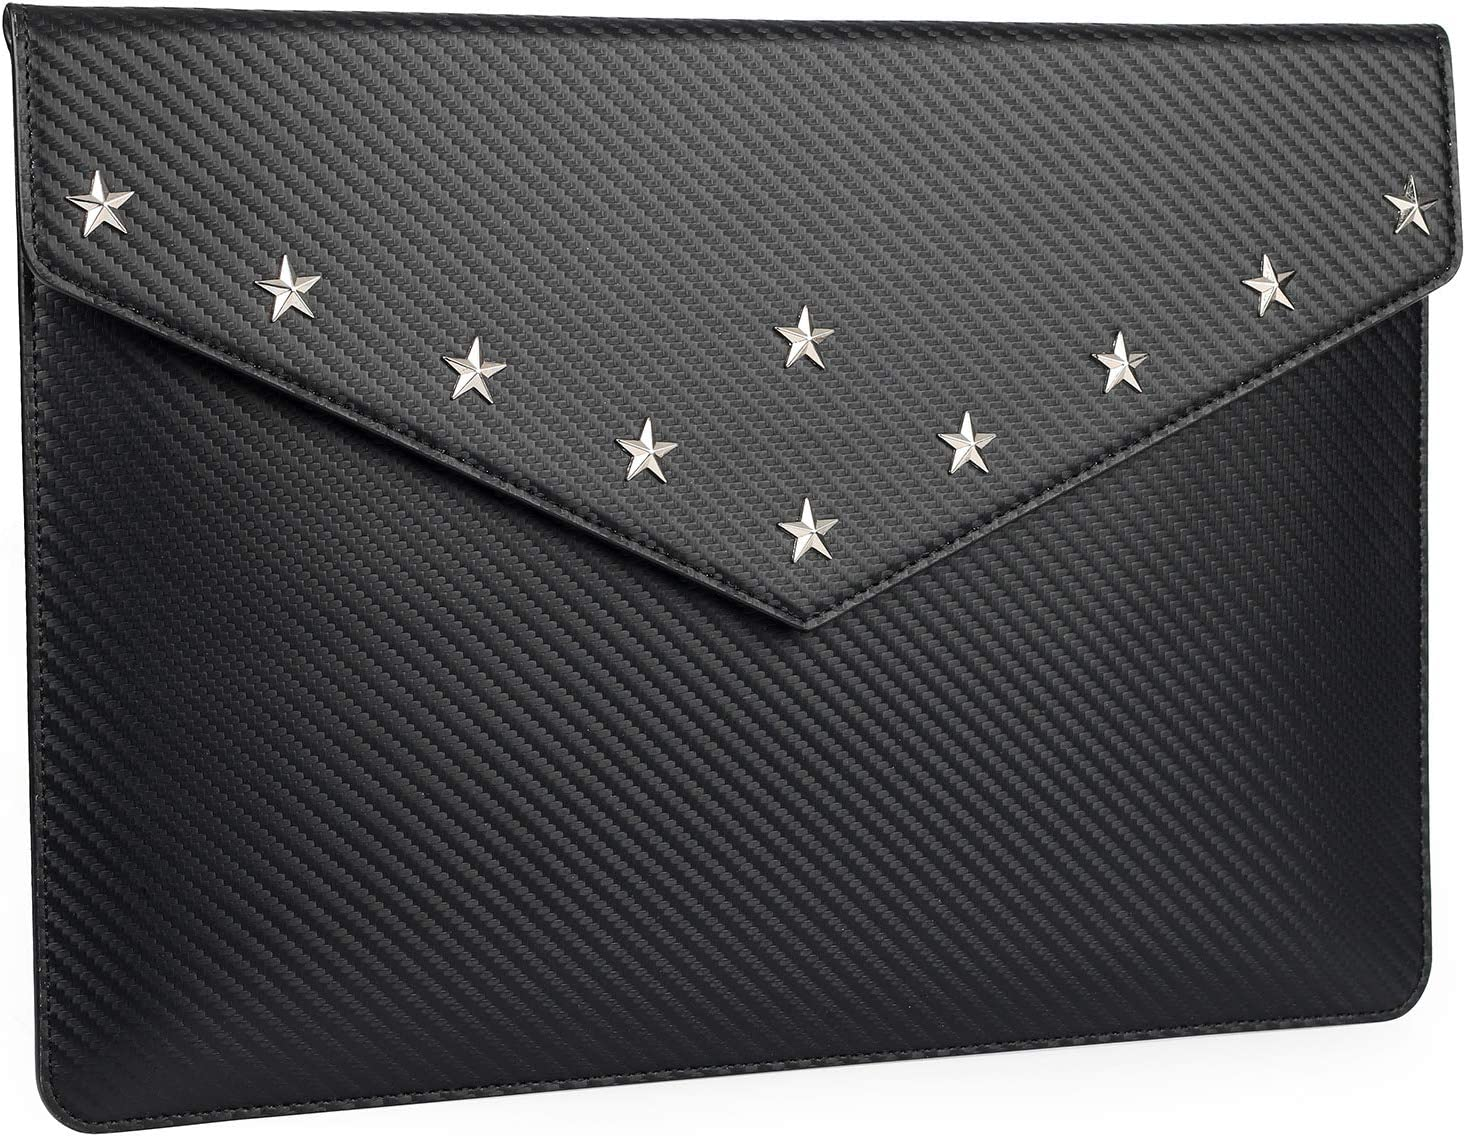 Laptop Sleeve for 13/13.3 Inch MacBook Air,MacBook pro Water-Resistant Notebook Cover Bag PU Leather Envelope Carrying Case